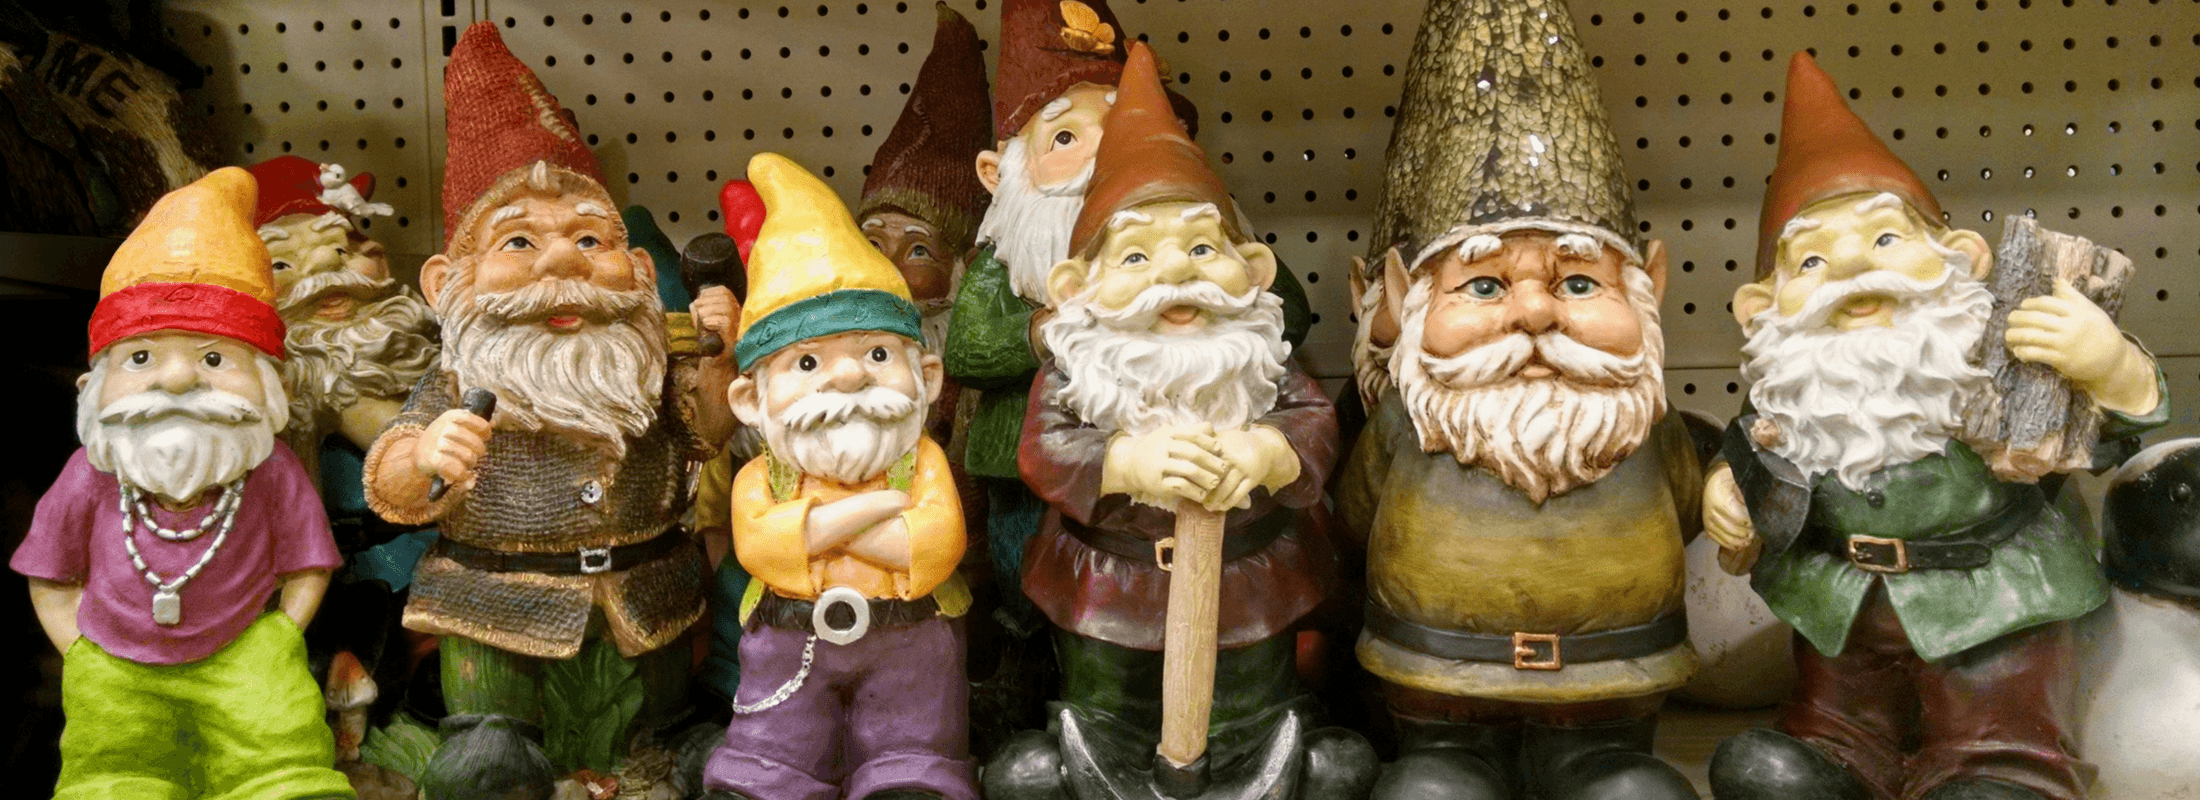 Real Gnomes: The Gnomes Of Gnomesville In Ferguson Valley